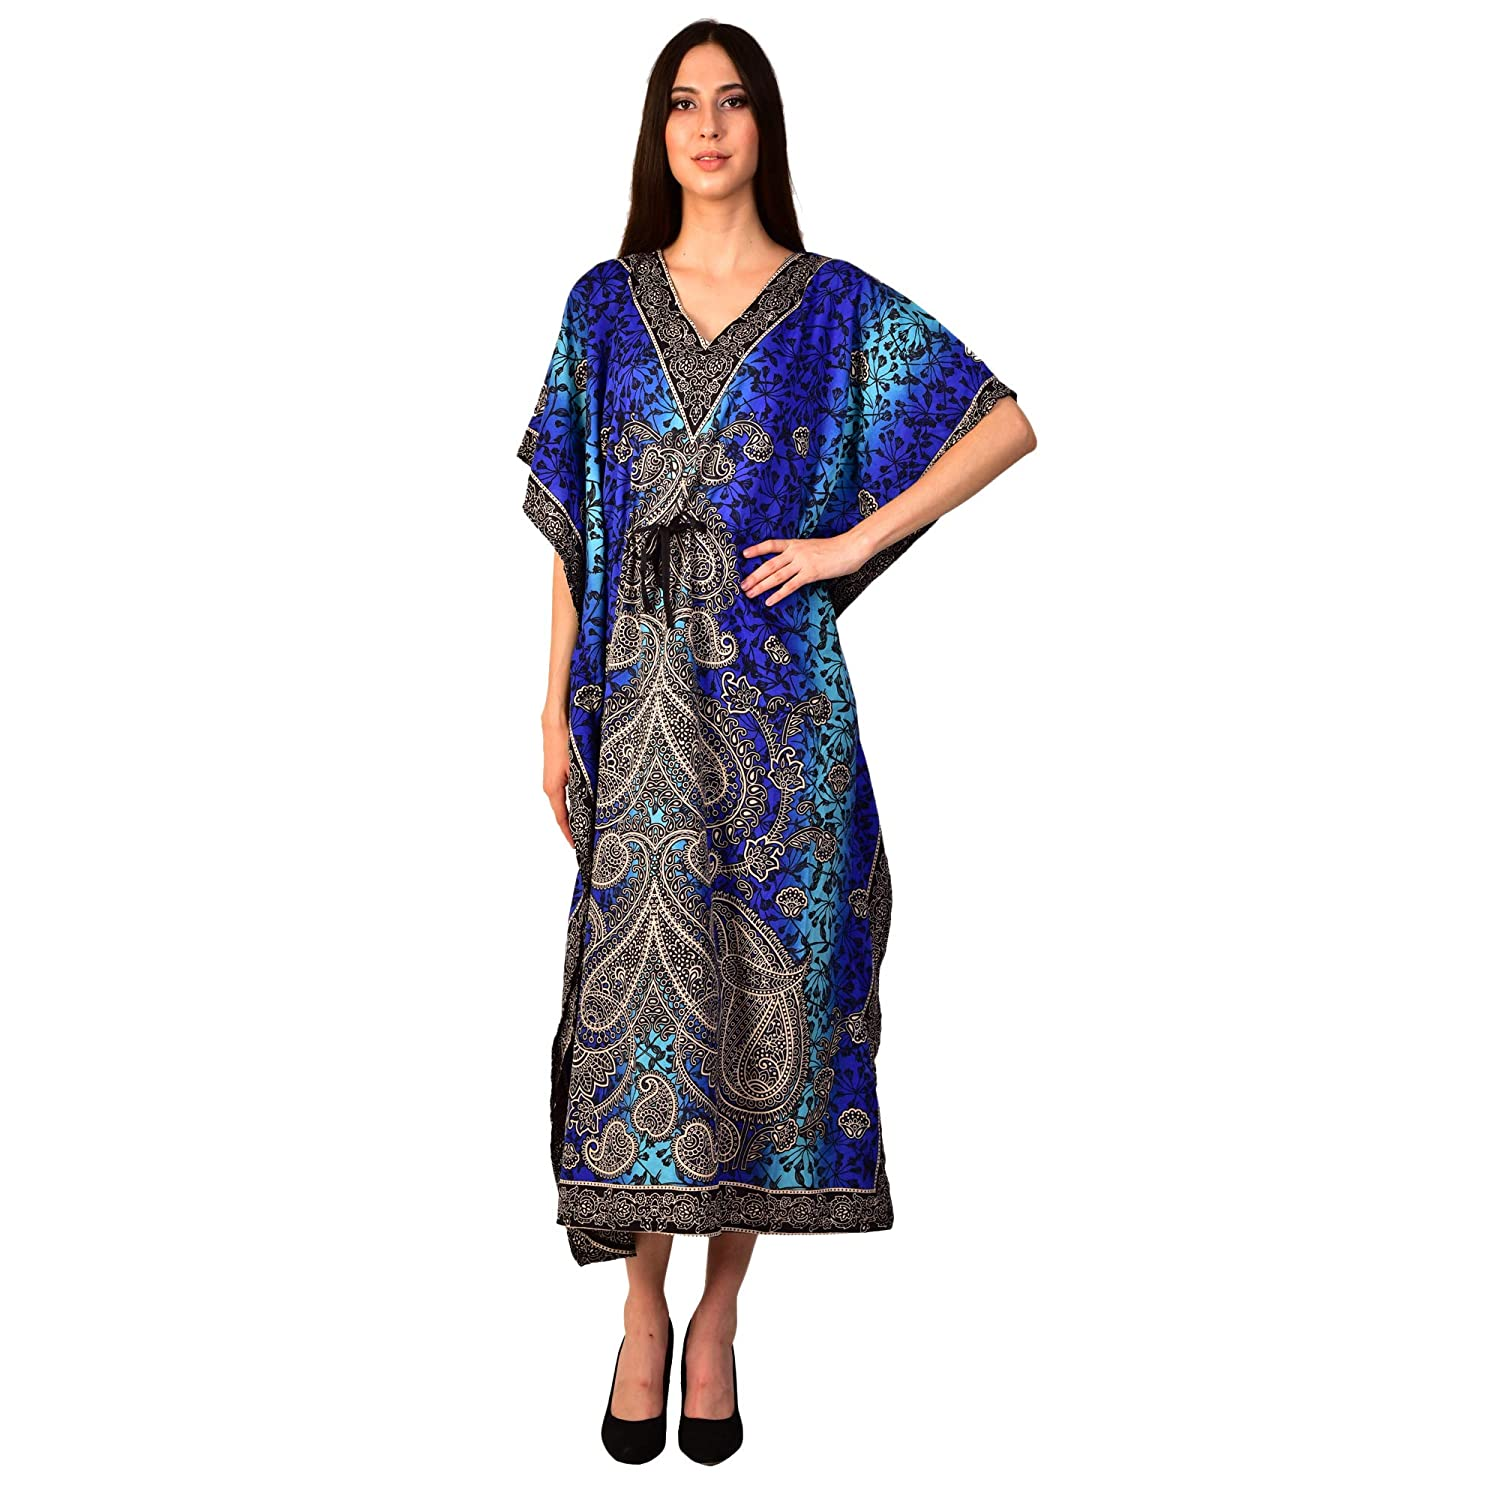 1920s Day Dresses, Tea Dresses, Mature Dresses with Sleeves eloria Womens Paisley Print Blue Kaftan Maxi Dress Summer Beach Dress Caftan $10.99 AT vintagedancer.com